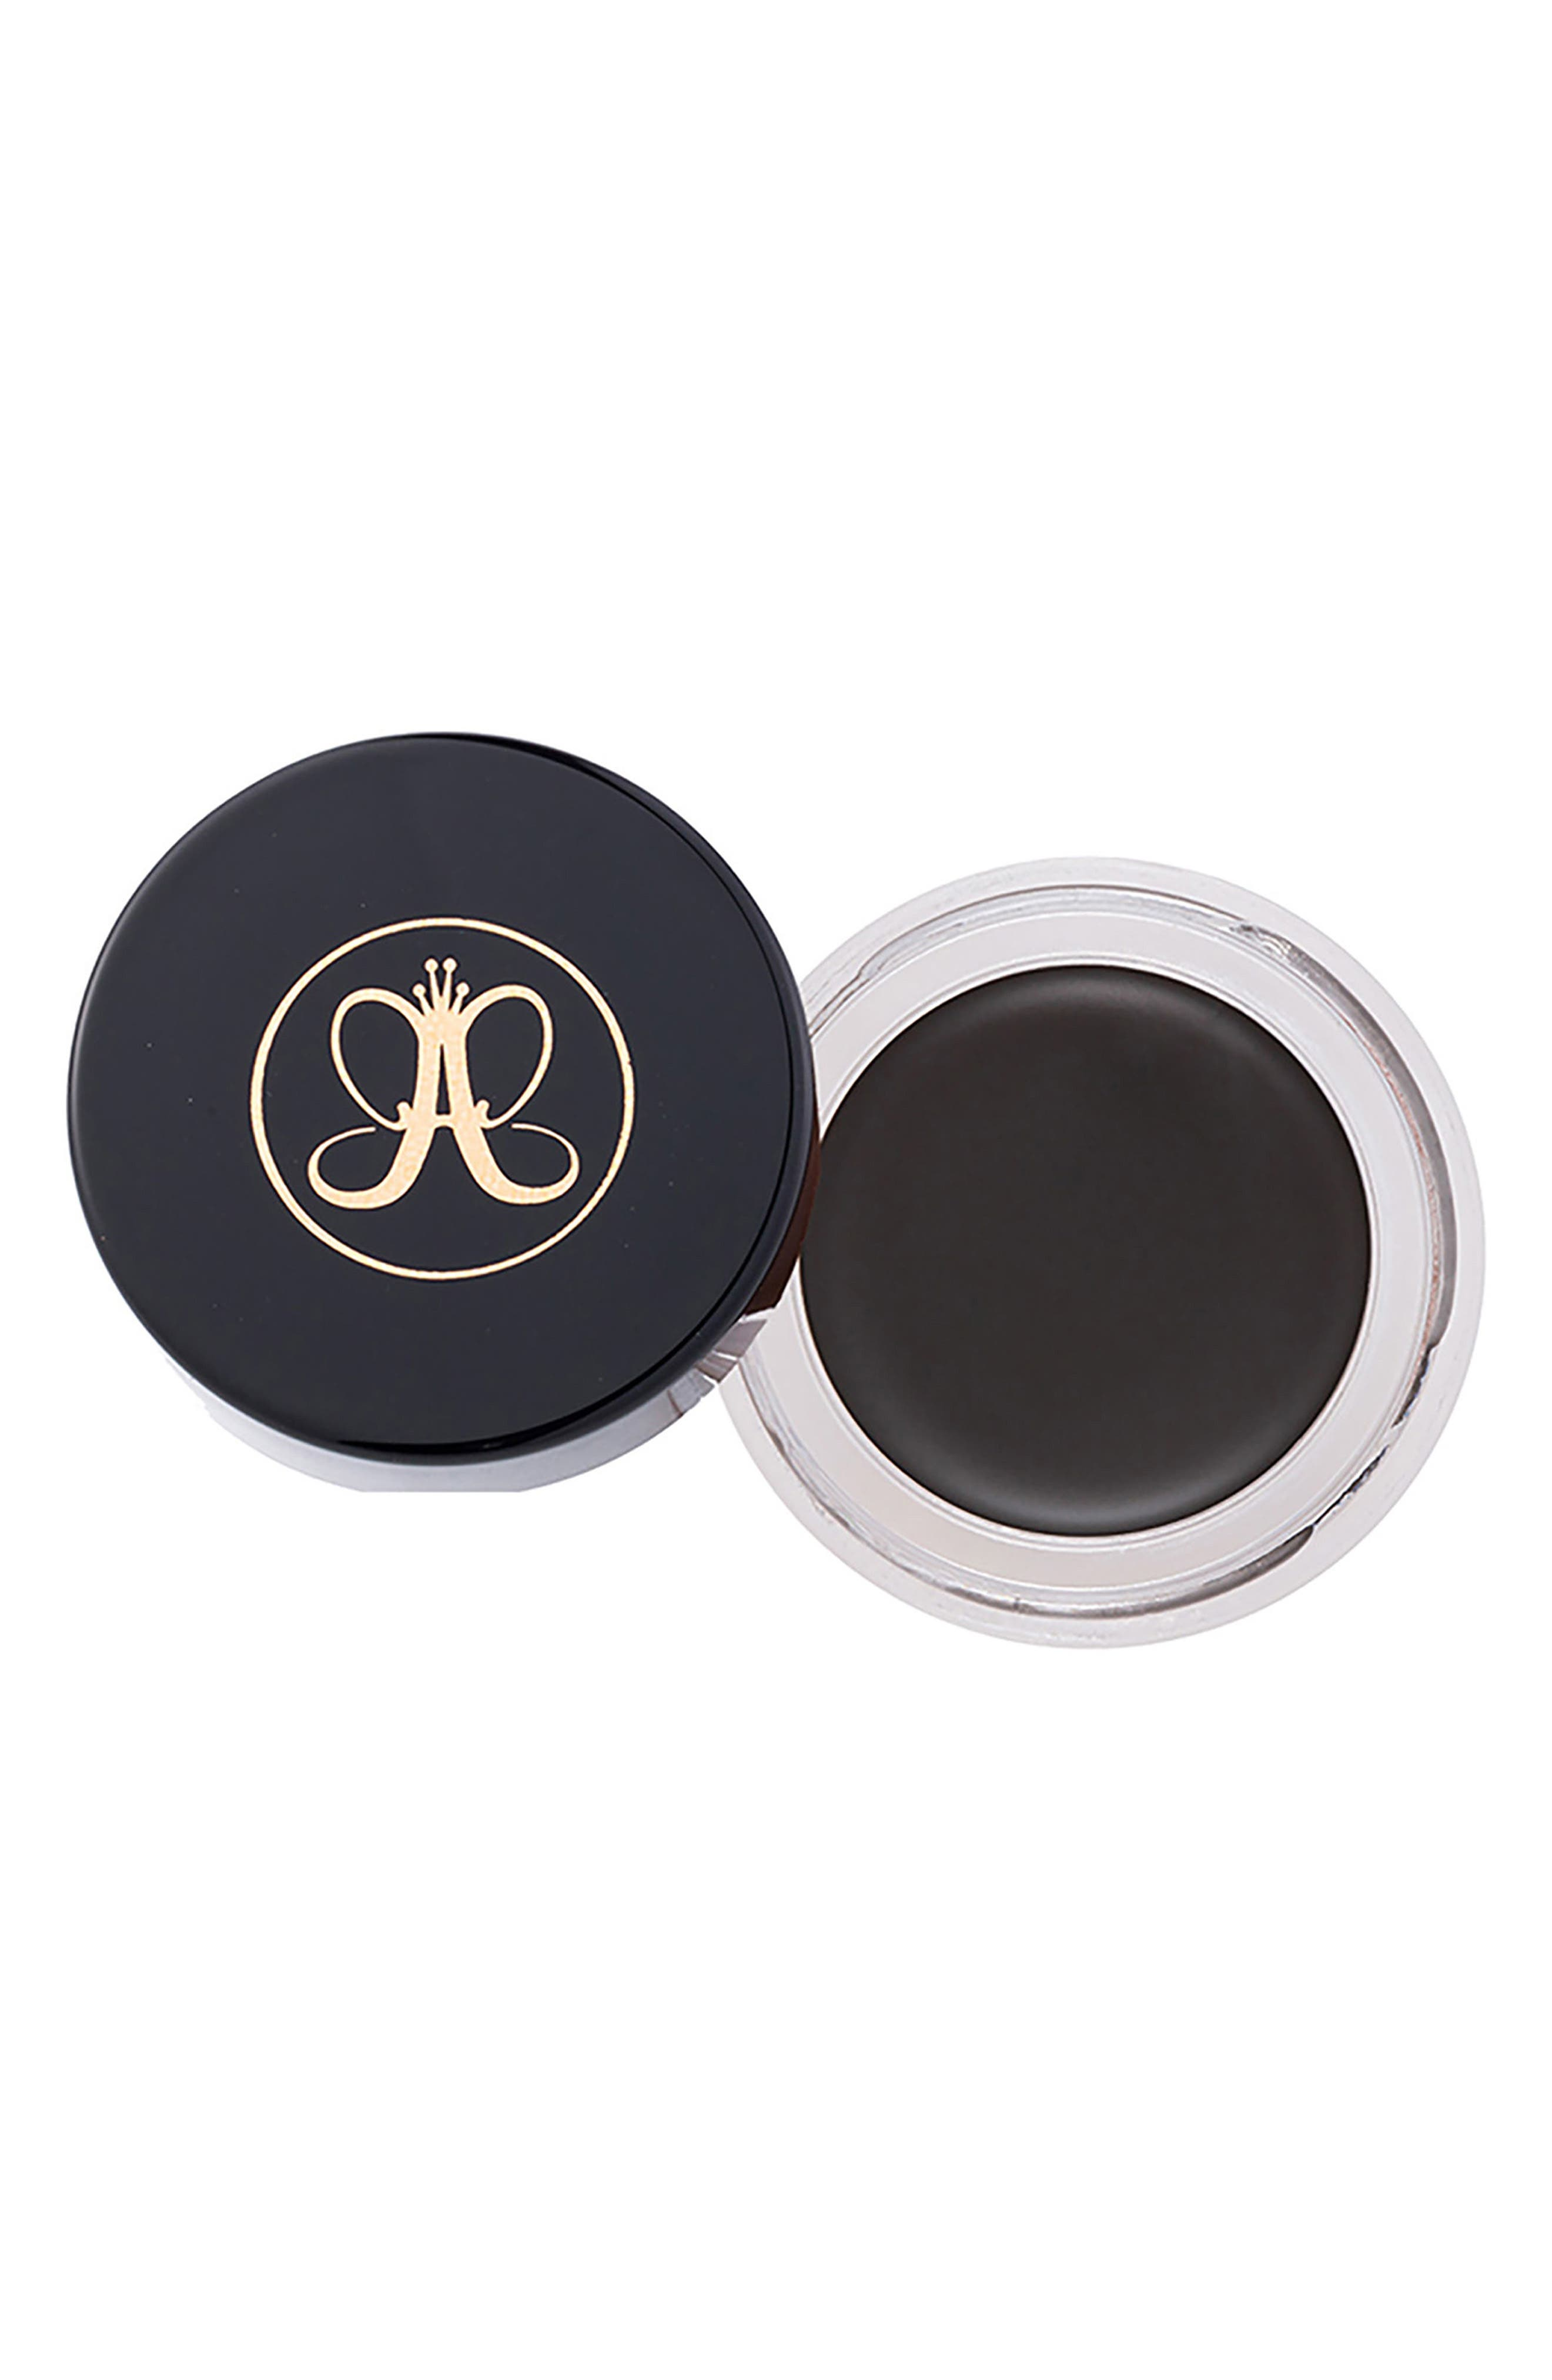 ANASTASIA BEVERLY HILLS Dipbrow Pomade<sup>®</sup> Waterproof Brow Color, Main, color, GRANITE